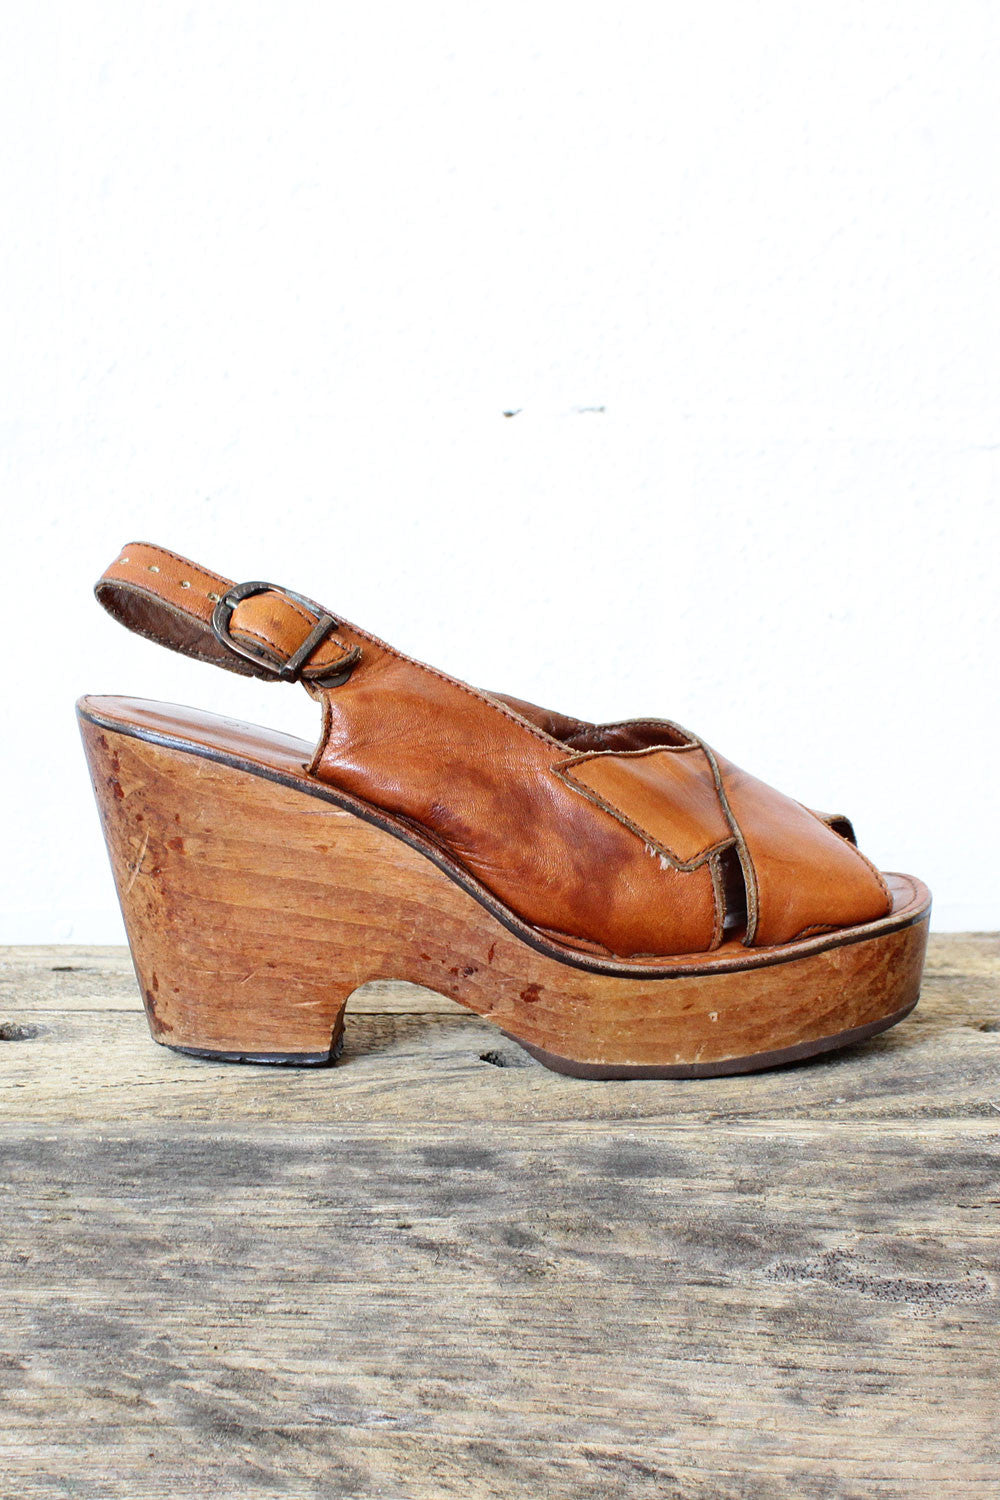 431fb71d97cf9 70s Wood Platforms 6 – OMNIA